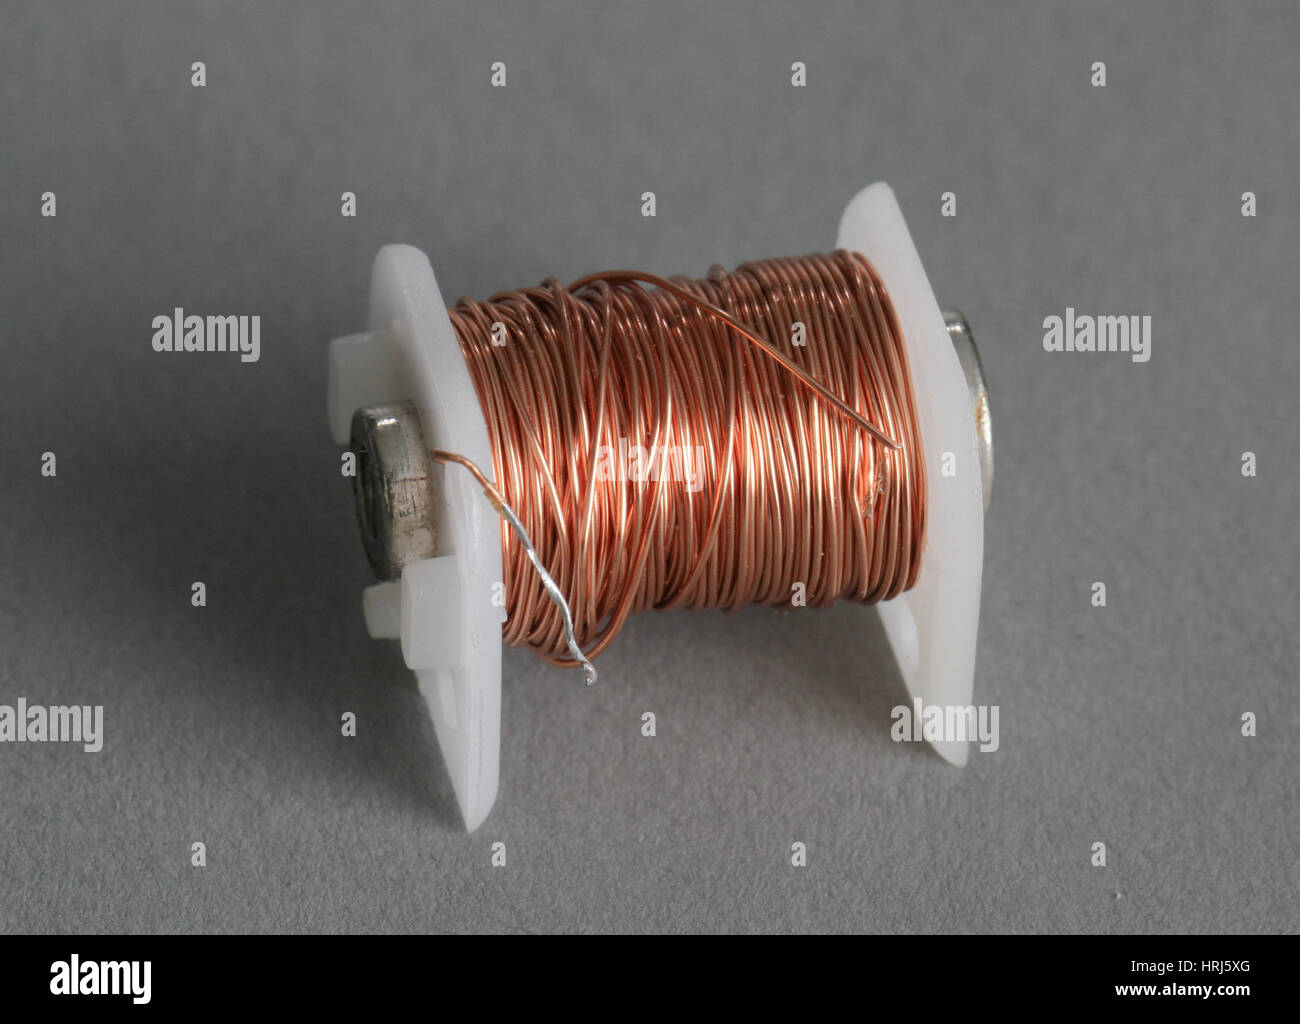 Enamel Coated Copper Wire Stock Photo: 135009464 - Alamy